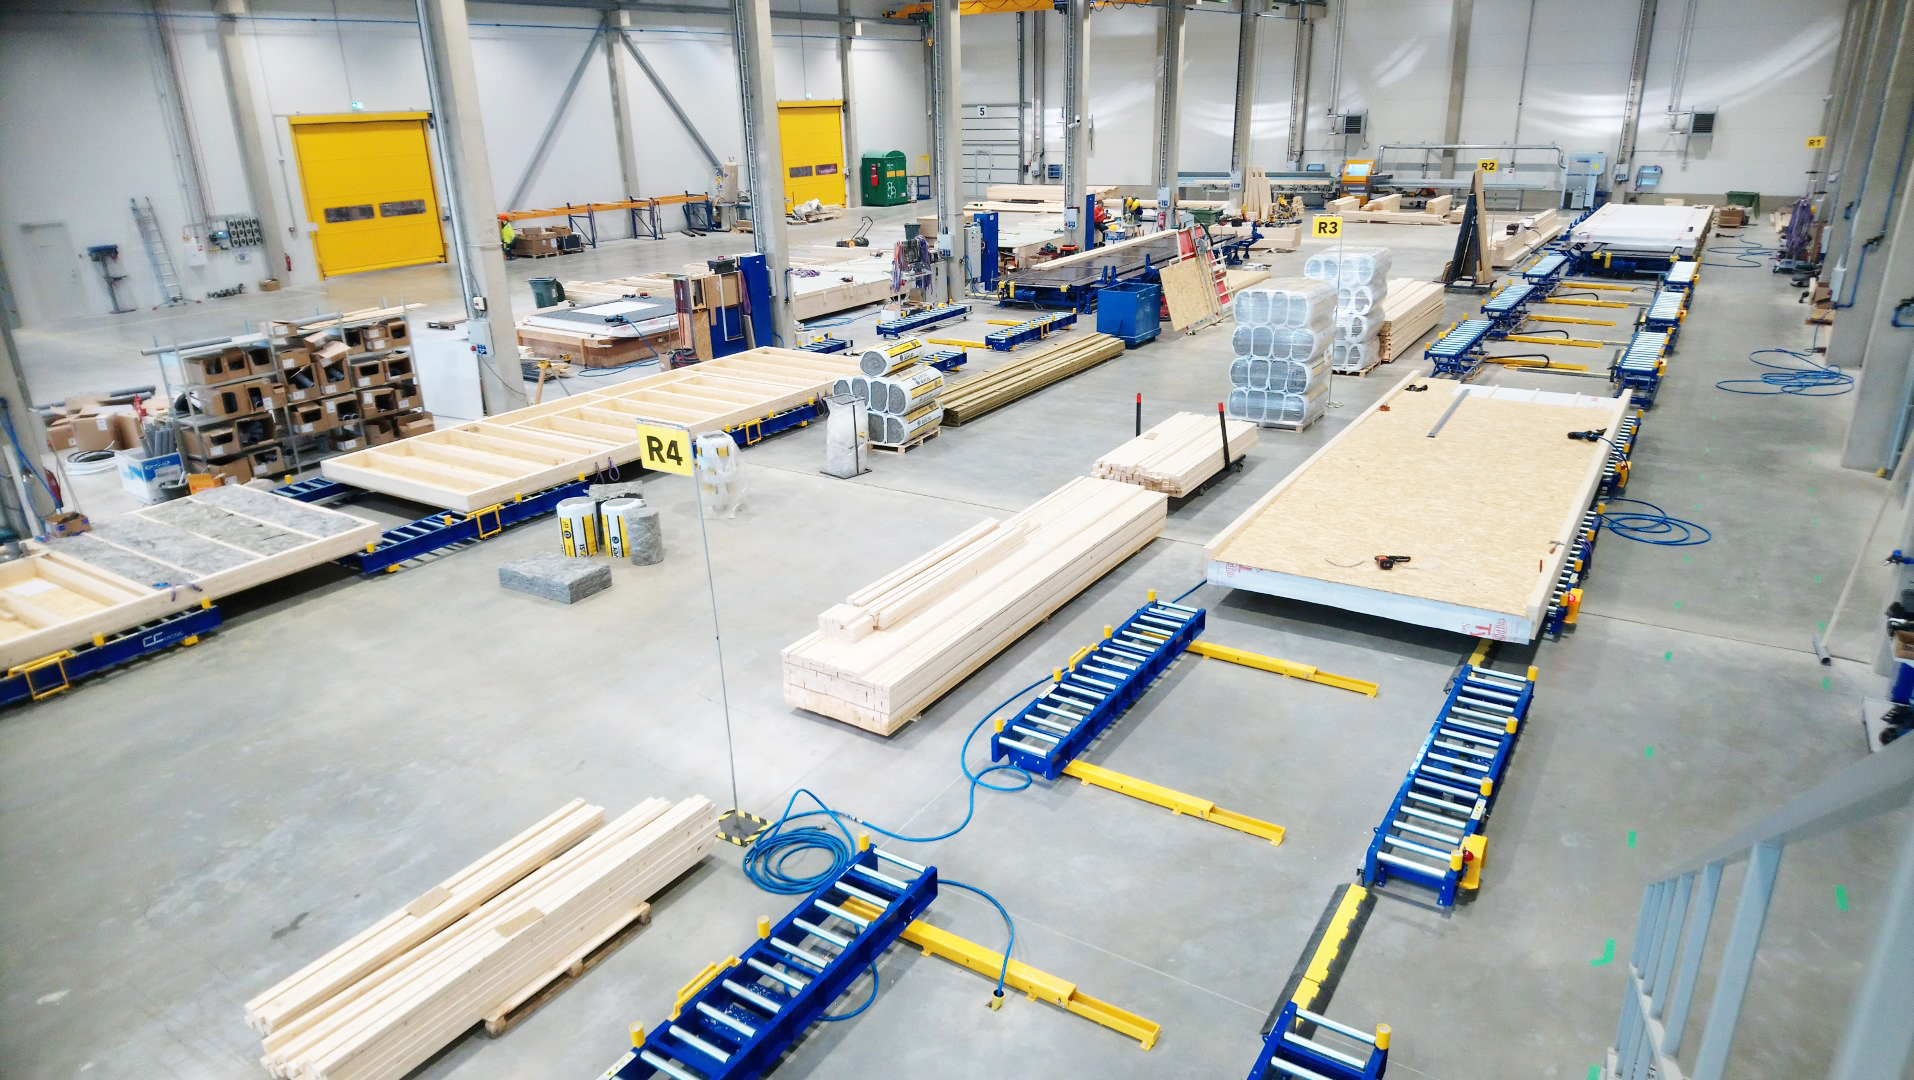 Modular houses assembly line equipment Moodulmajade koosteliin rulltee Линия сборки модульных домов